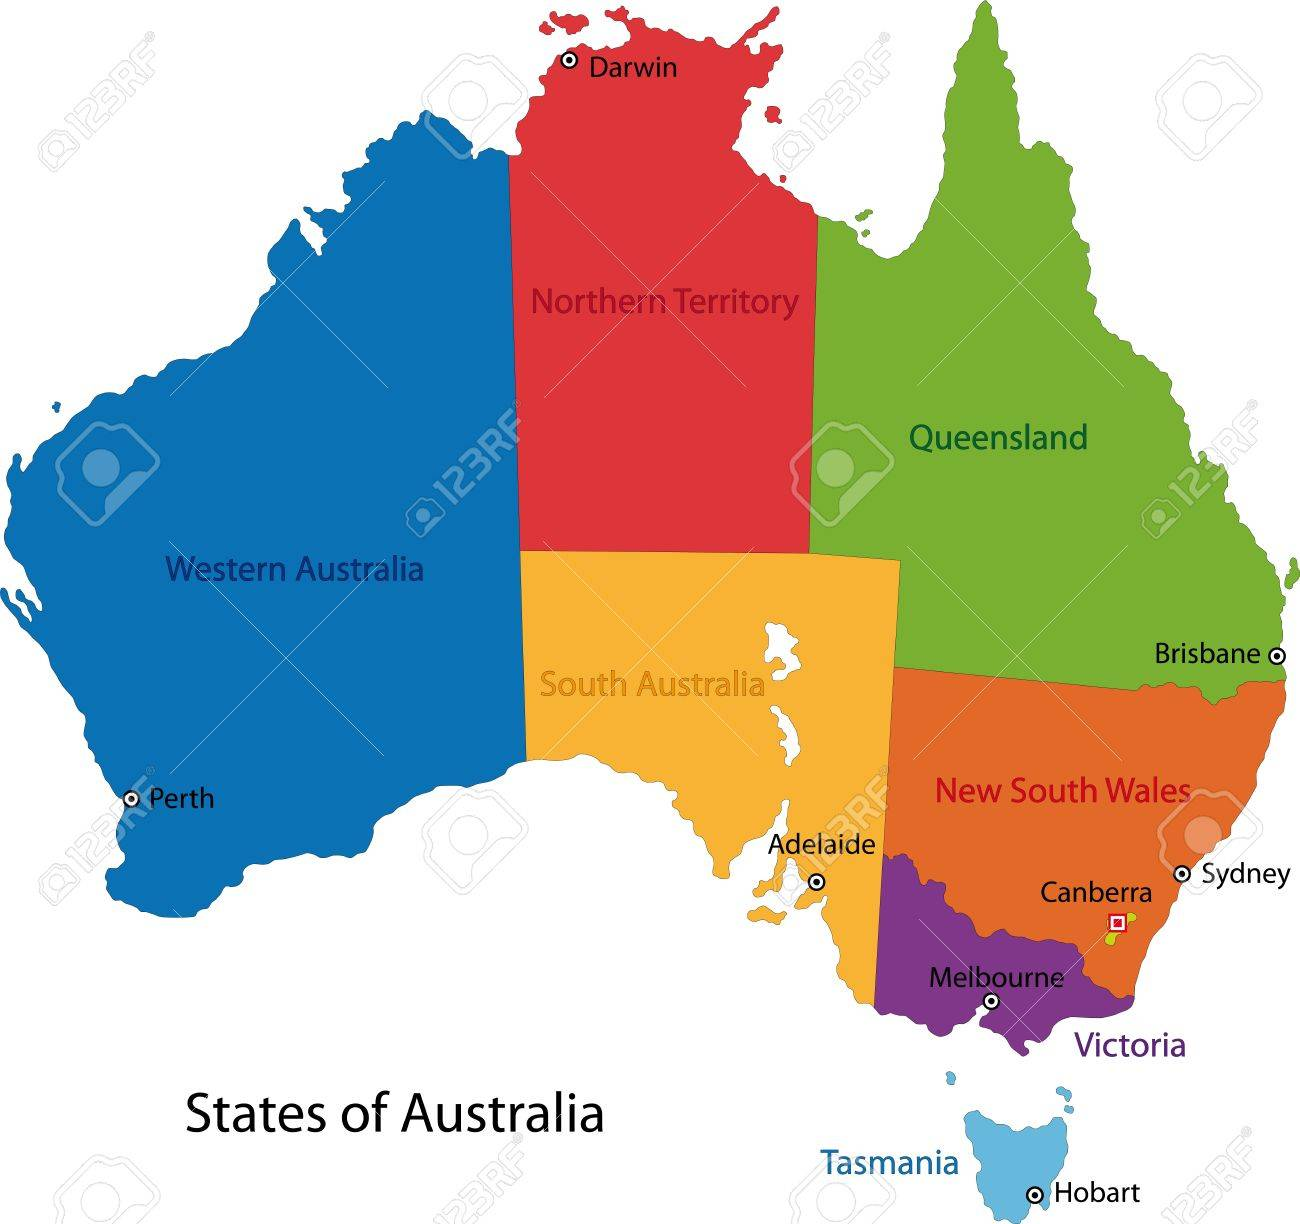 Queensland Map Stock Vector Illustration And Royalty Free - Australia map queensland